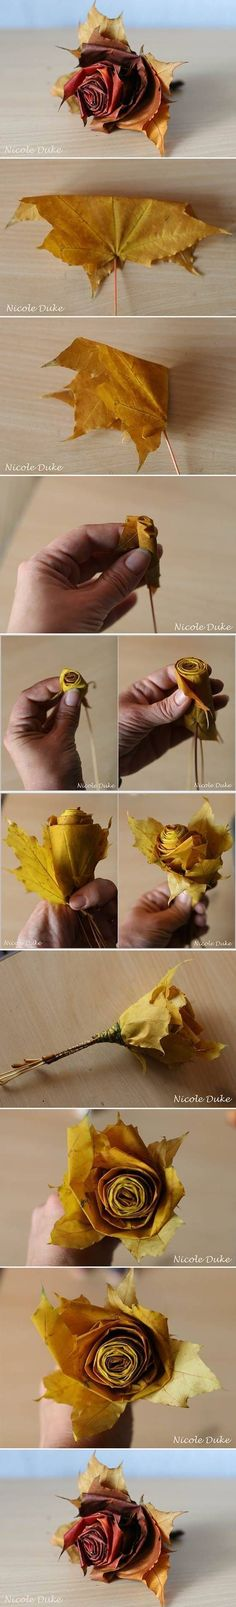 Make Fall Decoration yourself - 15 DIY Craft Ideas - Leaf Rose - Diy Fall Decor - Fall Crafts For Kids Kids Crafts, Leaf Crafts, Diy And Crafts, Craft Projects, Arts And Crafts, Paper Crafts, Craft Ideas, Diy Ideas, Kids Diy